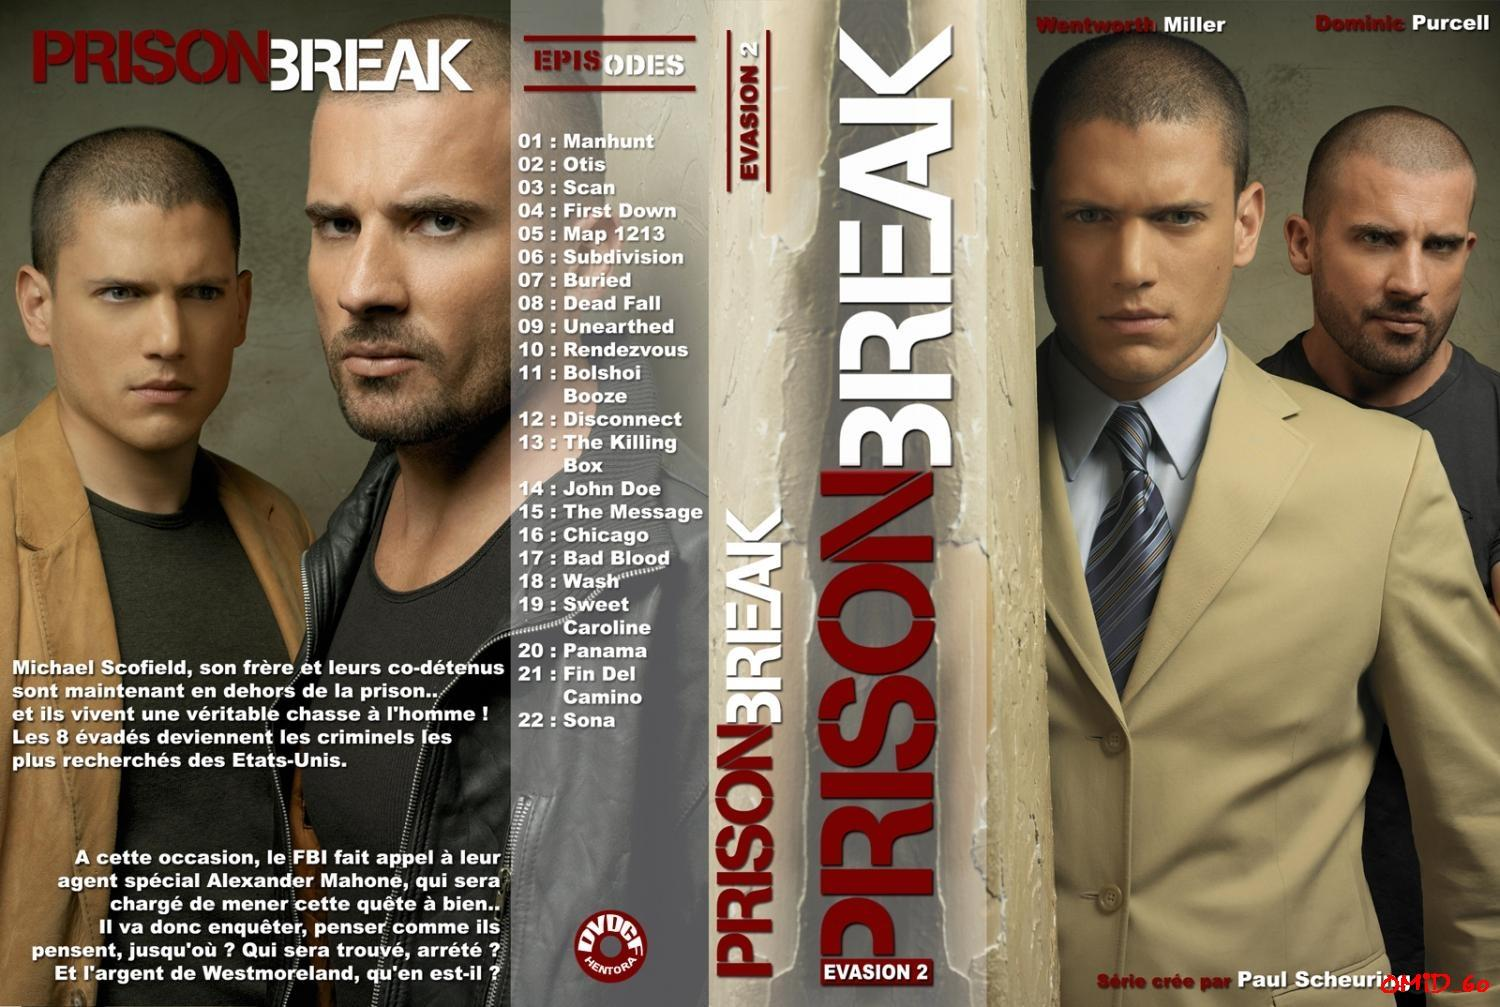 Prison Break Season 2, Vt Ngc Season 2